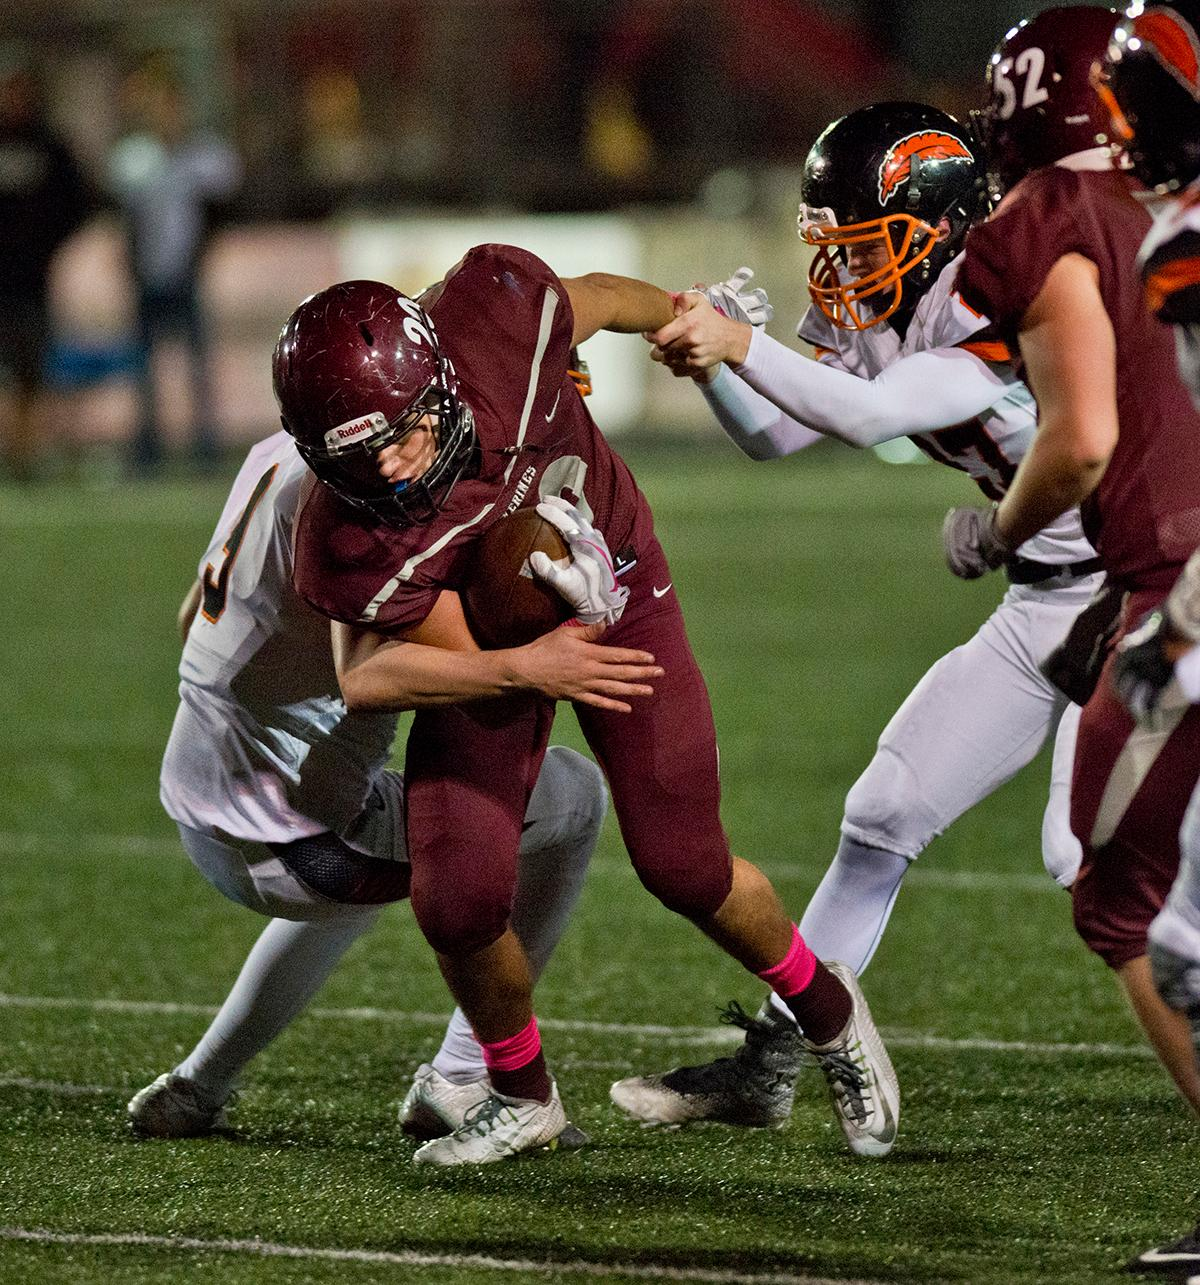 Roseburg Indians defensive back Colin Rietmann (#27) attempts to slow the forward motion of Willamette Wolverines running back Tanner Webb (#20). Roseburg defeated Willamette 21-20 at Wolverine Stadium. Photo by Dan Morrison, Oregon News Lab